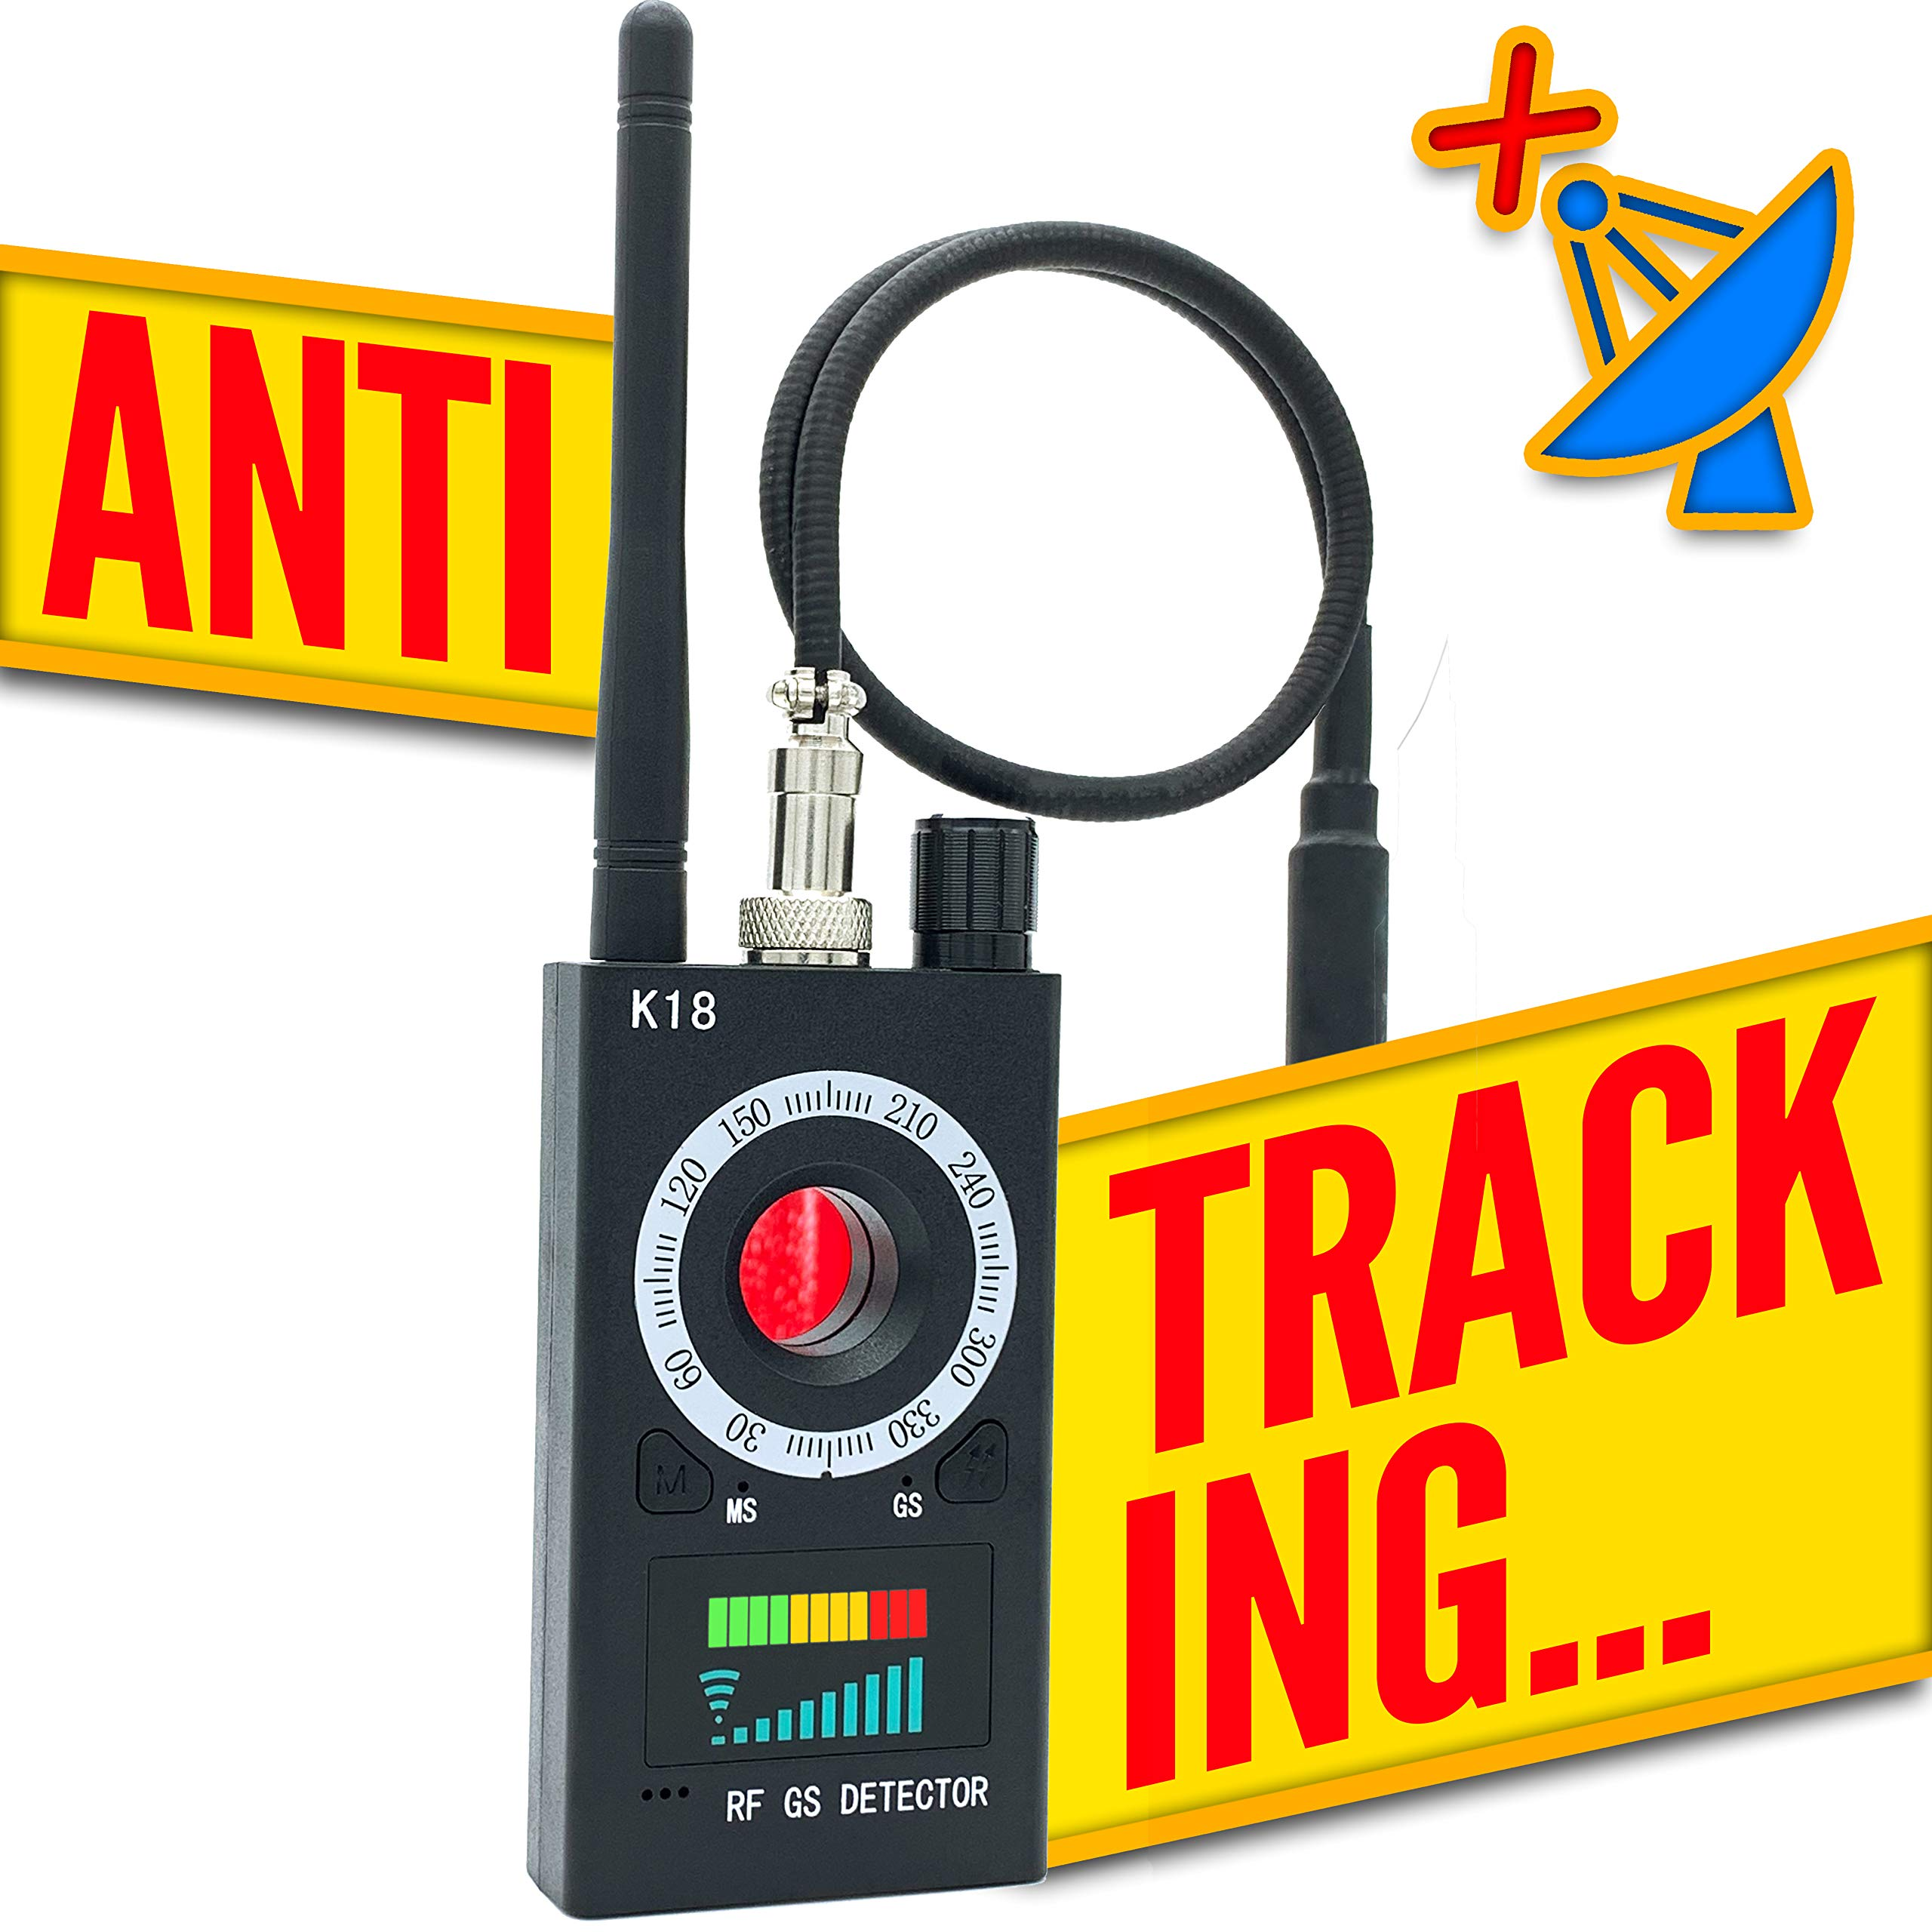 Anti Spy RF Detector Wireless Camera Finder and Bug Tracker with GPS Signal Detector and Portable Radio Scanner for Eavesdropping Devices by PBC Products